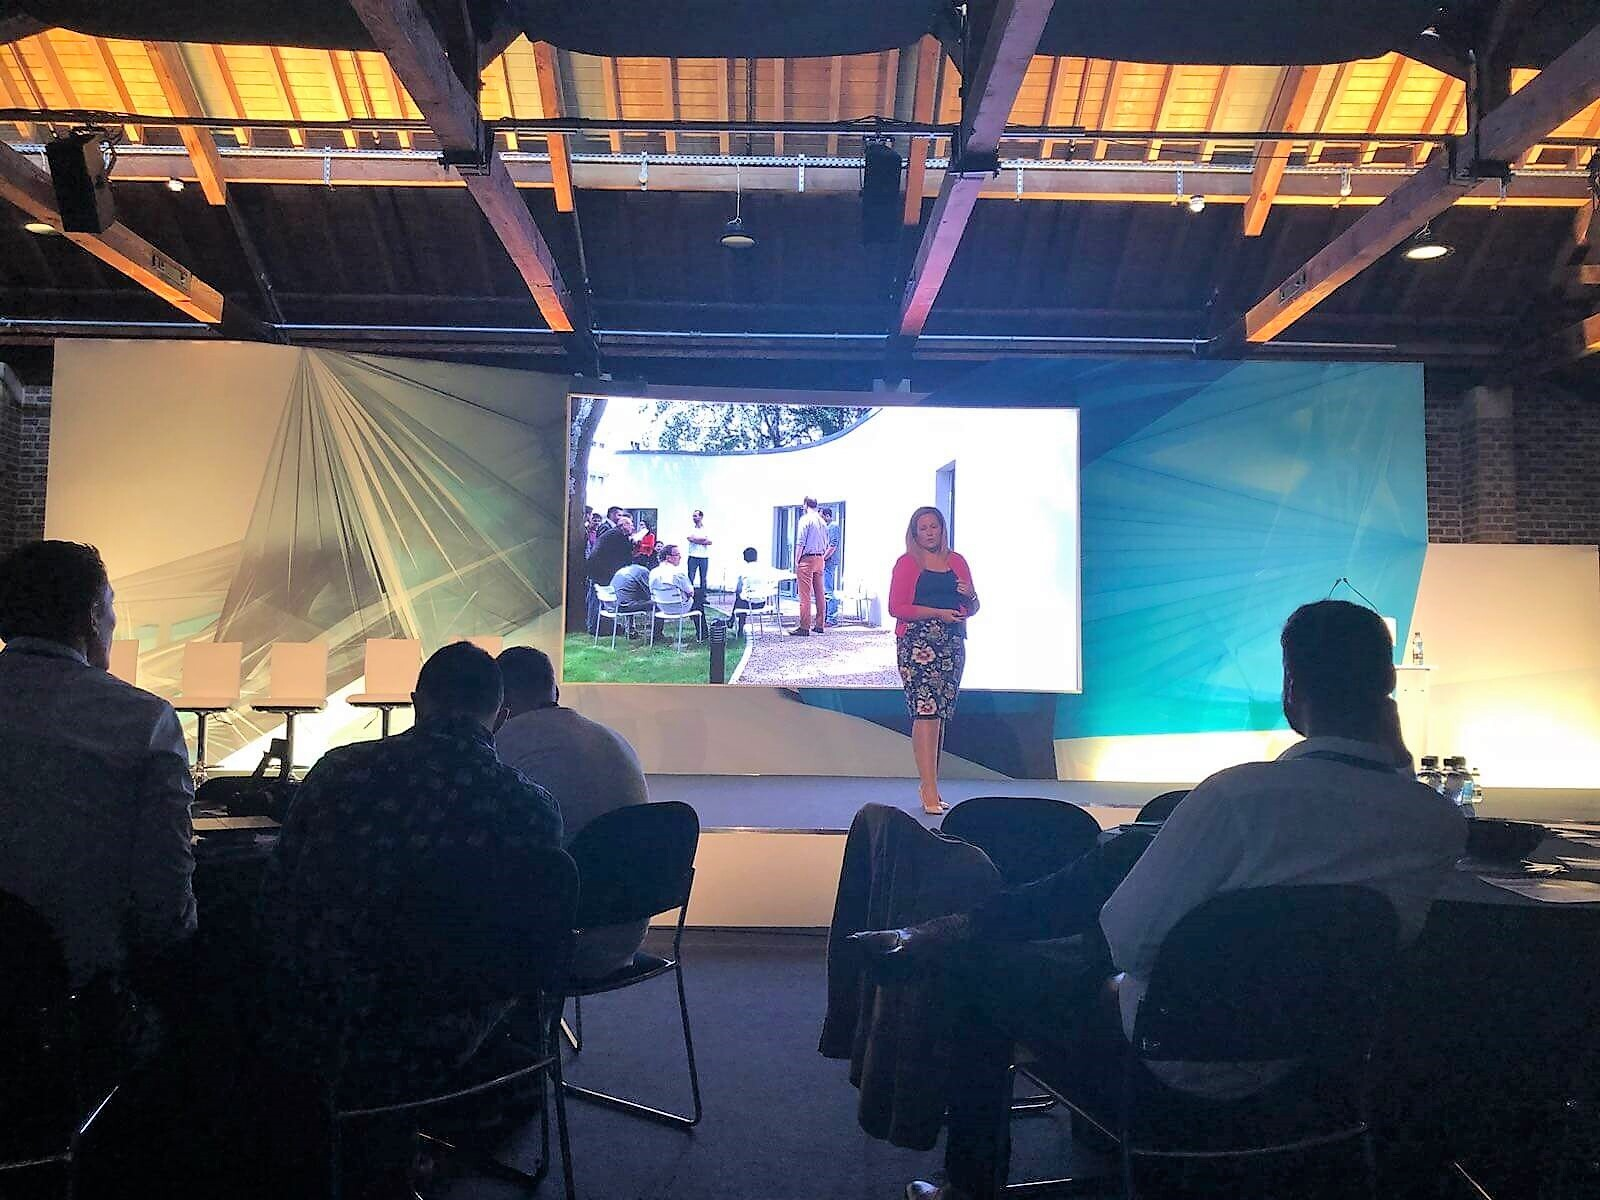 Lessons learned from Autodesk University image